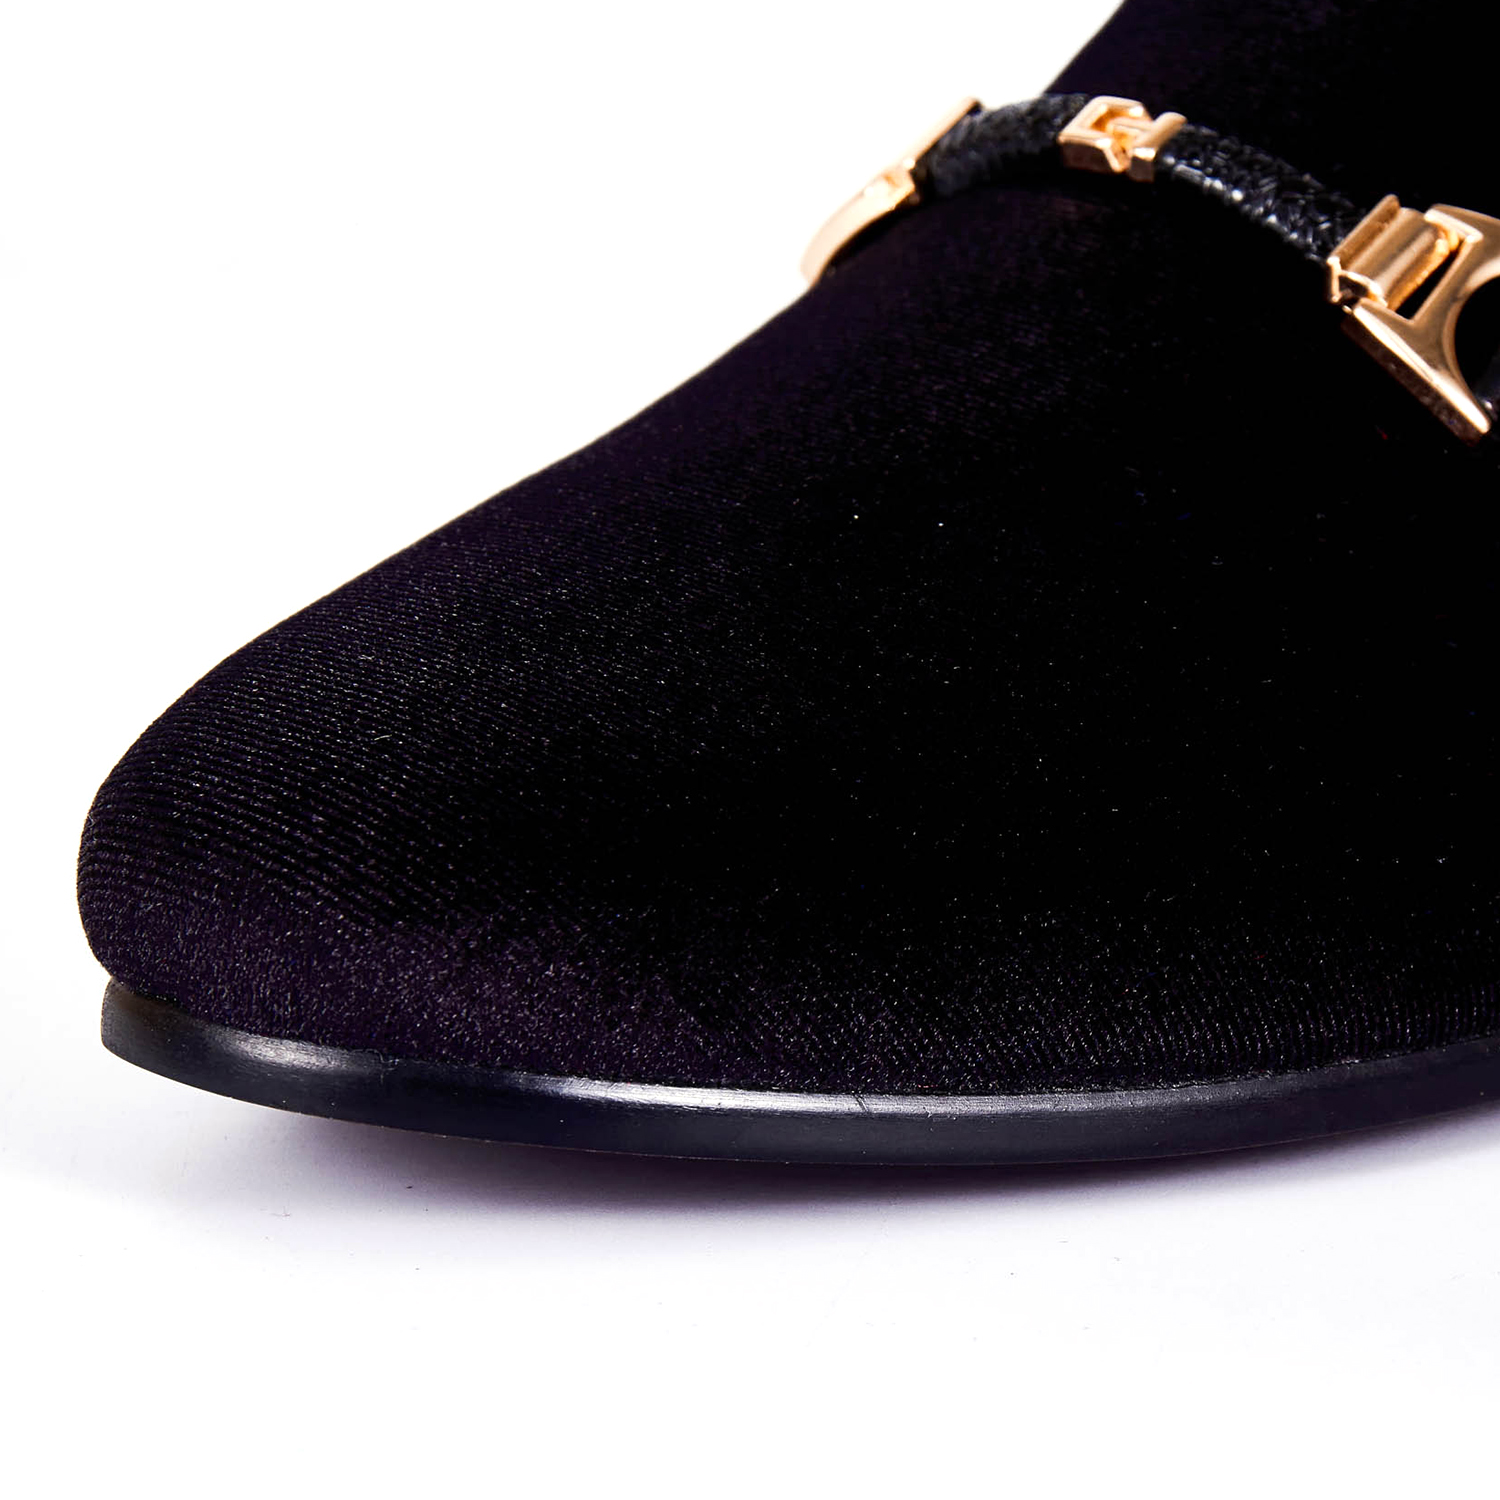 92dc320f02f202 Harpelunde Men Buckle Strap Classic Shoes Handmade Wedding Shoes Black  Velvet Loafers Size 6 14-in Formal Shoes from Shoes on Aliexpress.com